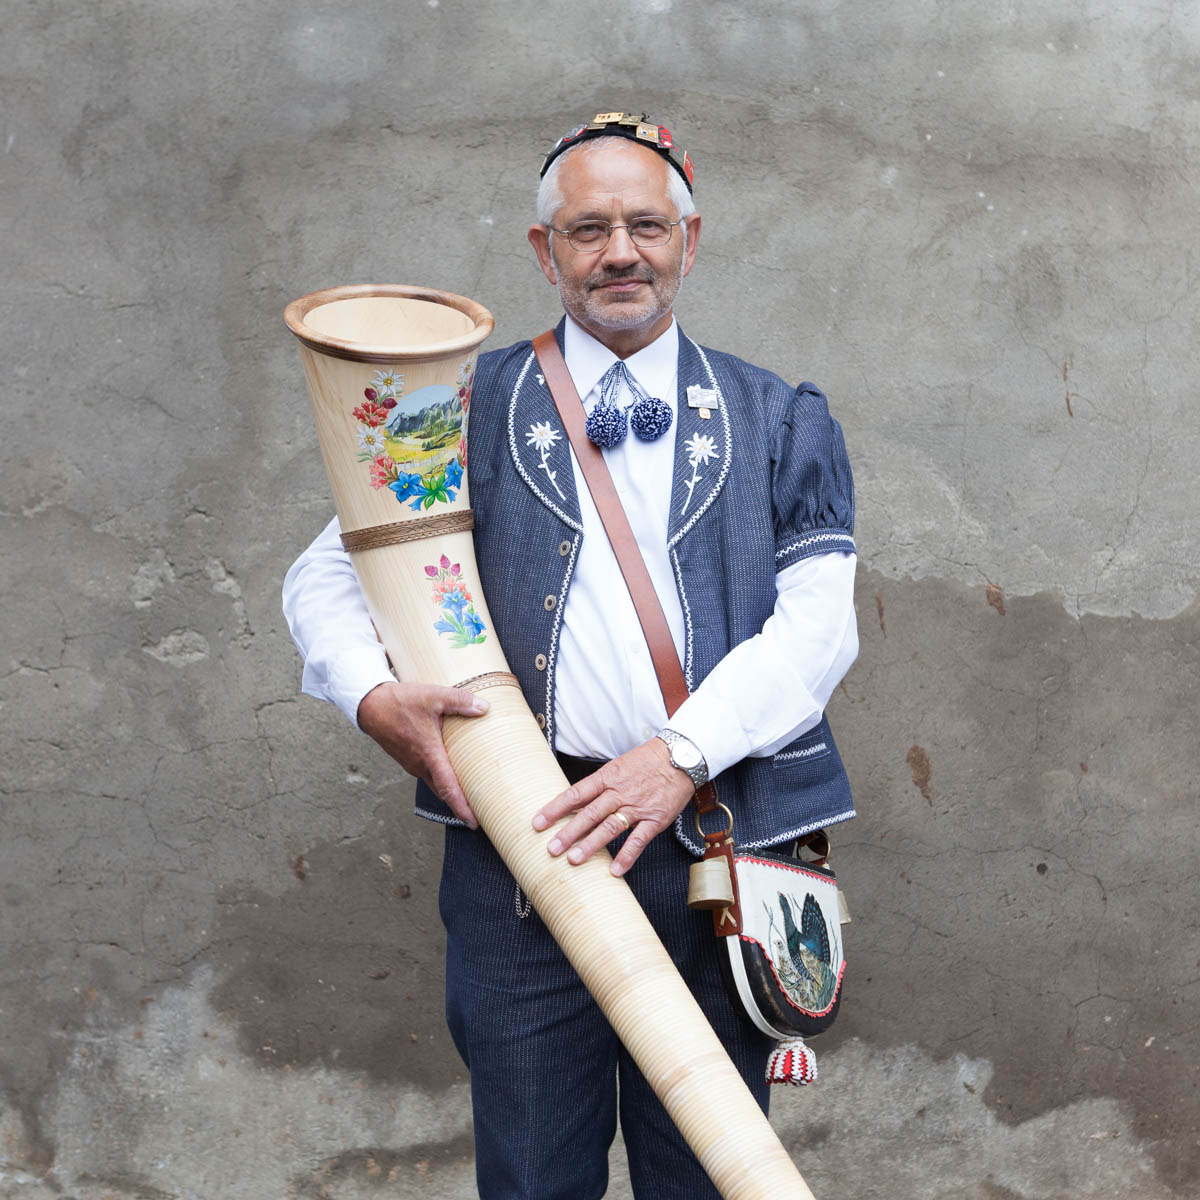 "Paul Feyer 2nd Tenor - Paul Feyer, 64, 2nd tenor and renowned  Alphorn player. He is an active member of the Jodlerklub ""Alphüttli"" since 1970.  Plaffeien, June, 2012. - Copyright © © S. Borcard - N. Metraux - Planfayon / Plaffeien - Fribourg - Switzerland - <A href=""https://maps.google.com/?ll=46.741653,7.287395&z=16"" target=""_blank"">(Map Paul Feyer 2nd Tenor)</A>"